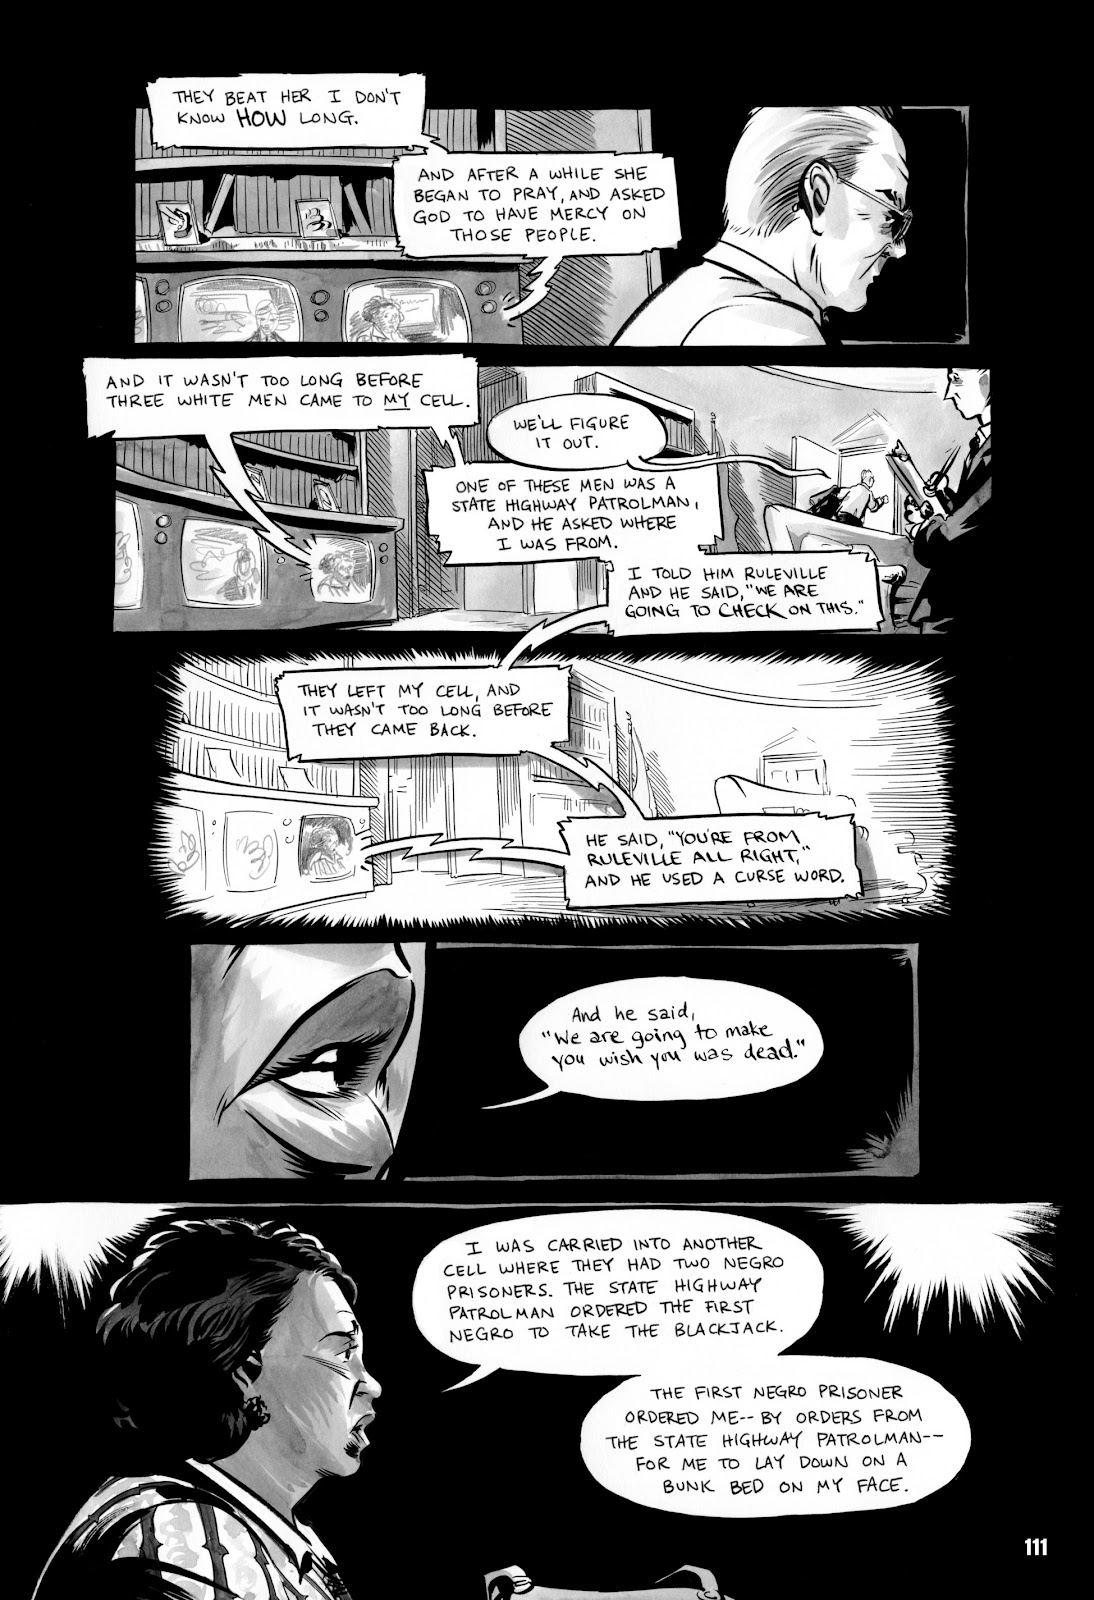 March 3 Page 108